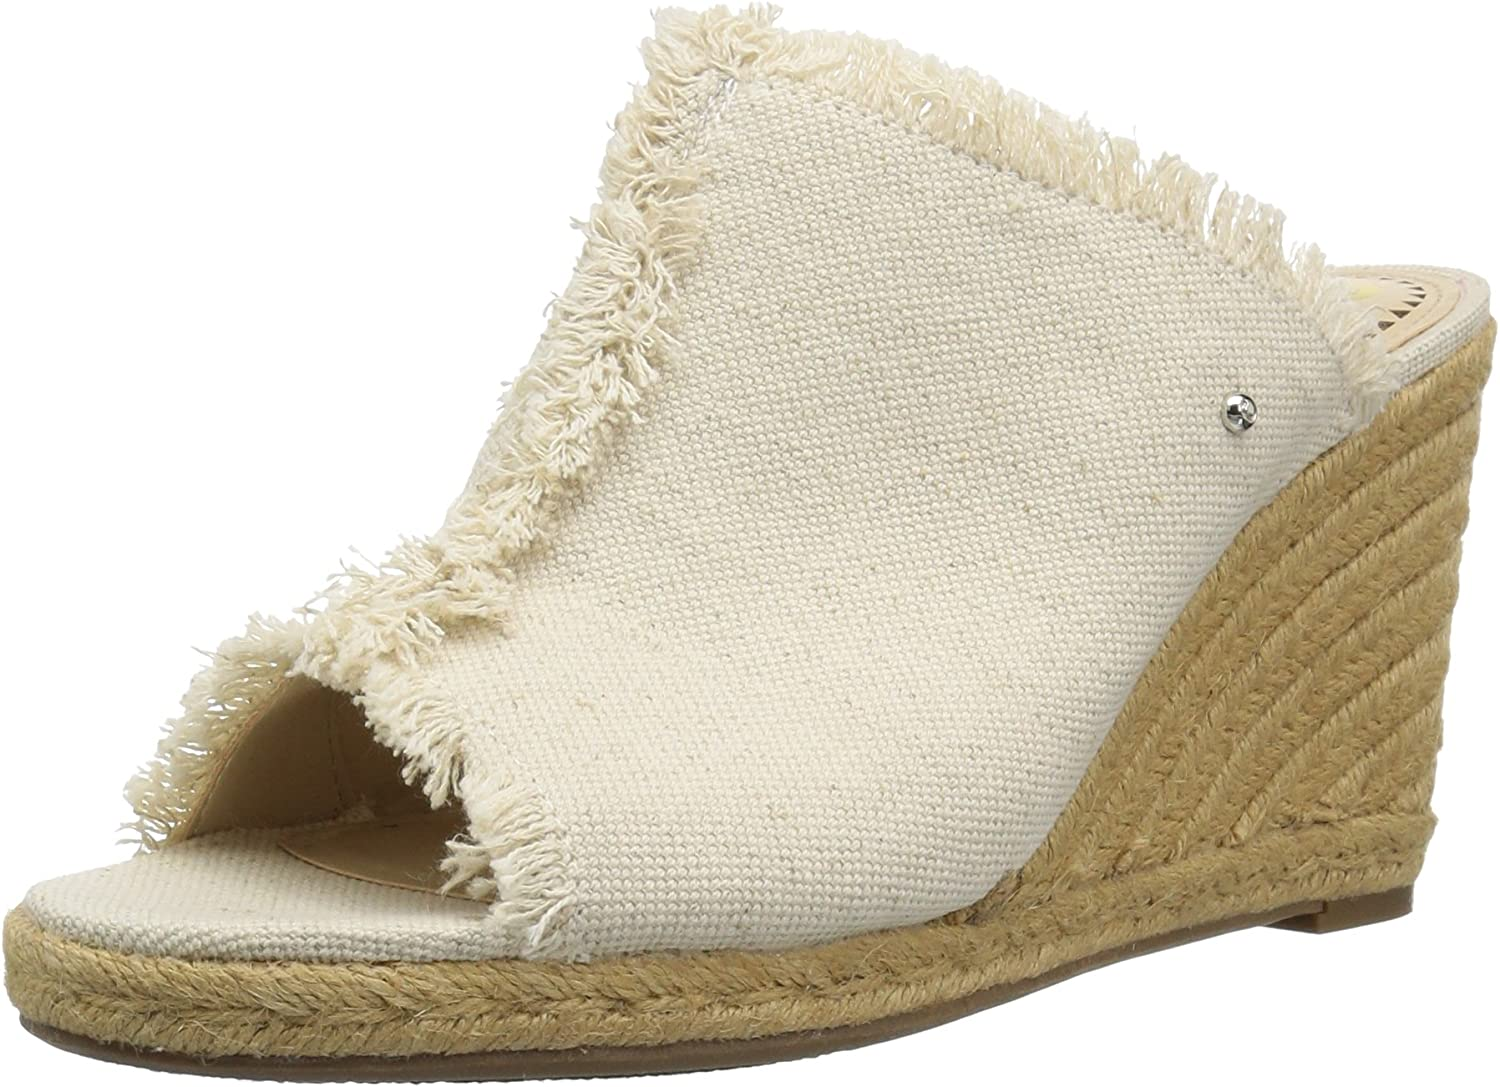 Circus by Sam Edelman Womens Baker Wedge Sandal